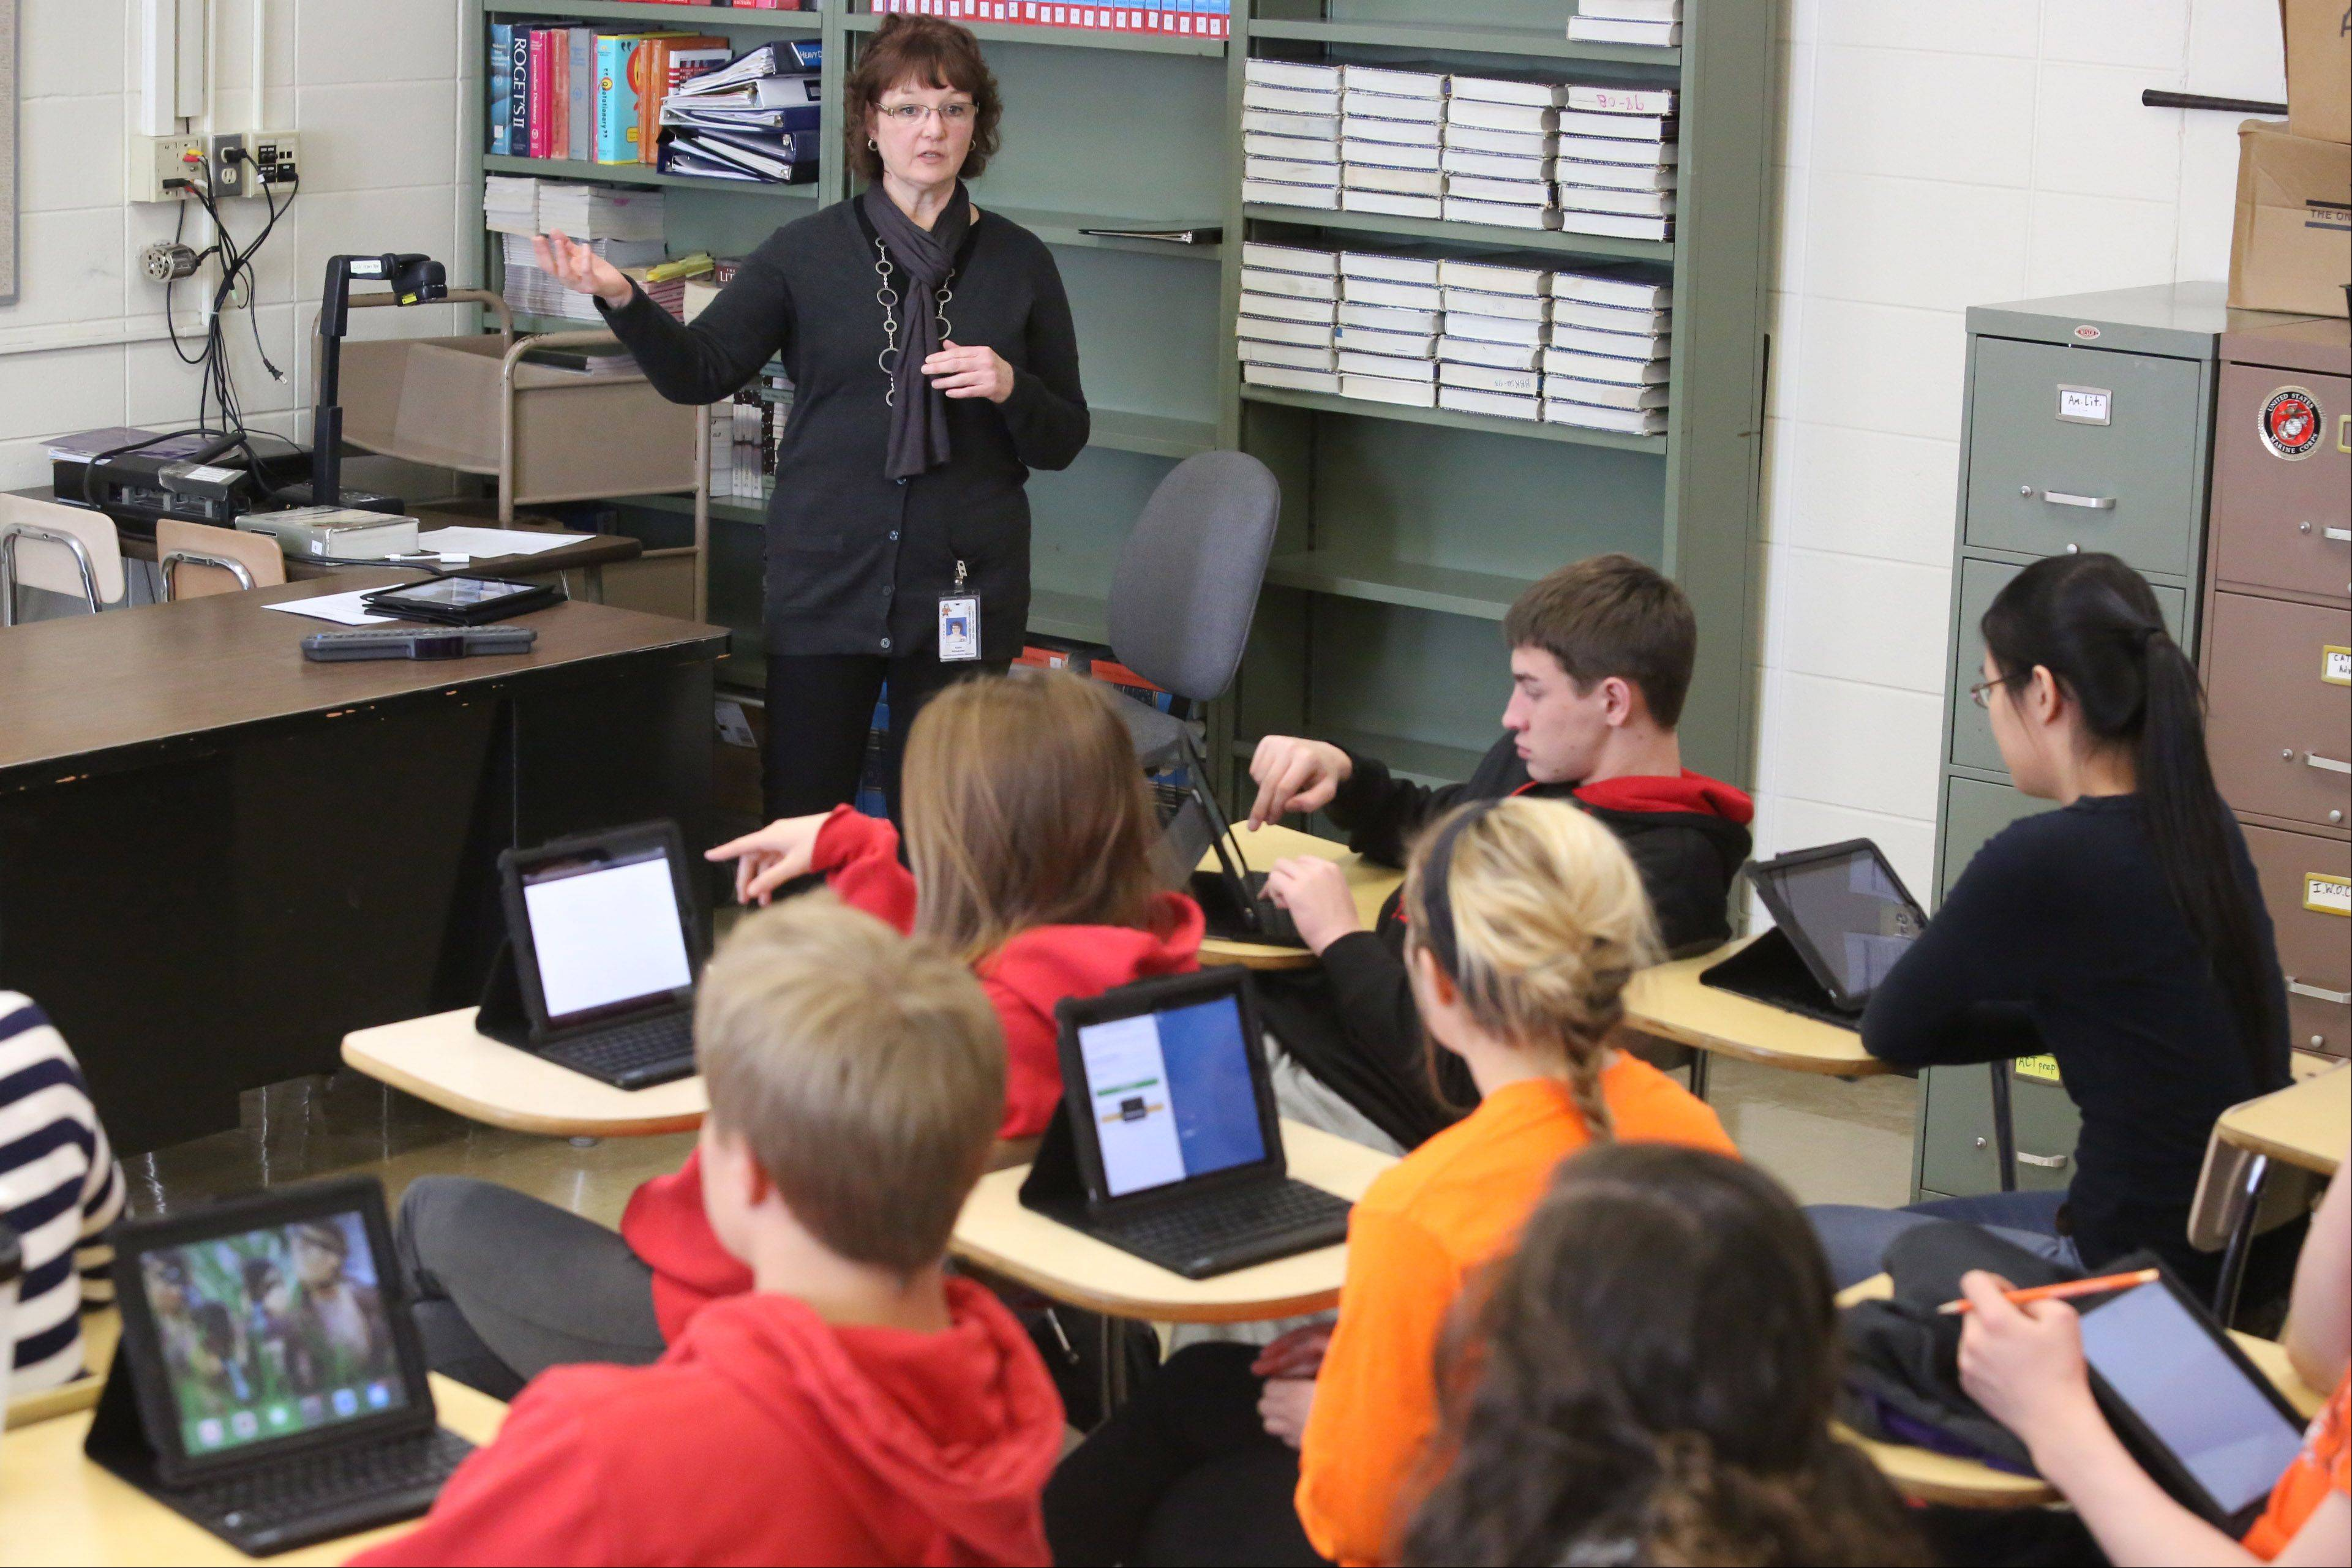 Alexander teaches juniors in Kent Manthey's Advanced Placement English, Language, and Composition class how to download and view or listen to public domain books on iPads issued to them.